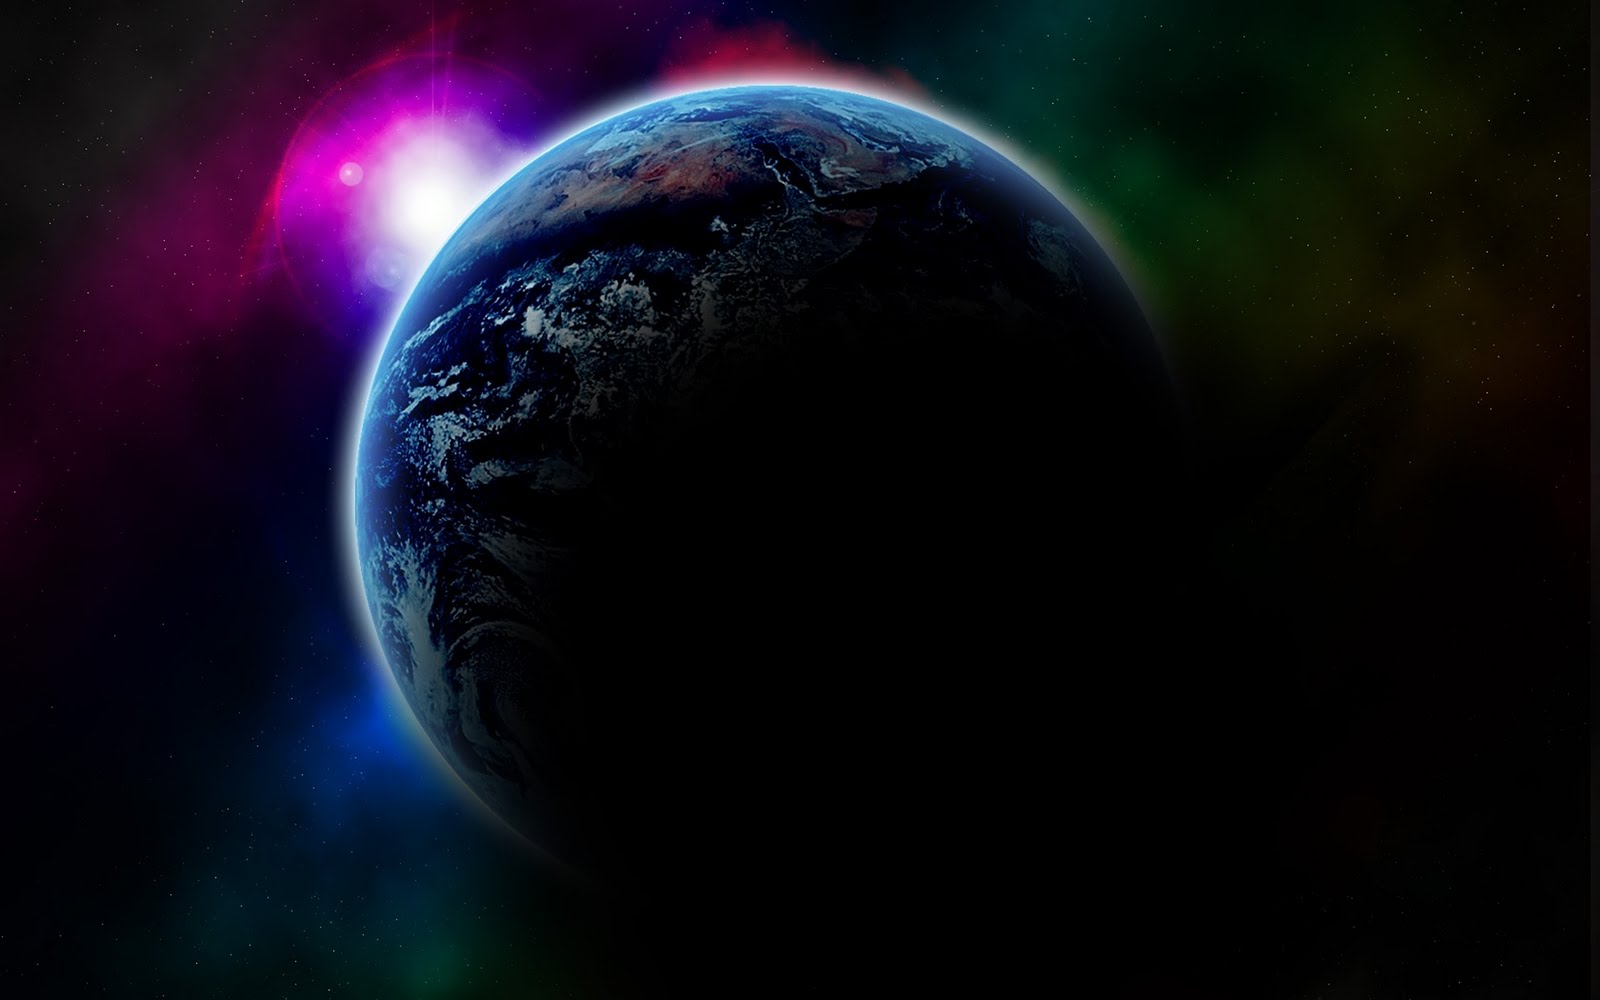 Love U Wallpapers: 3d space background